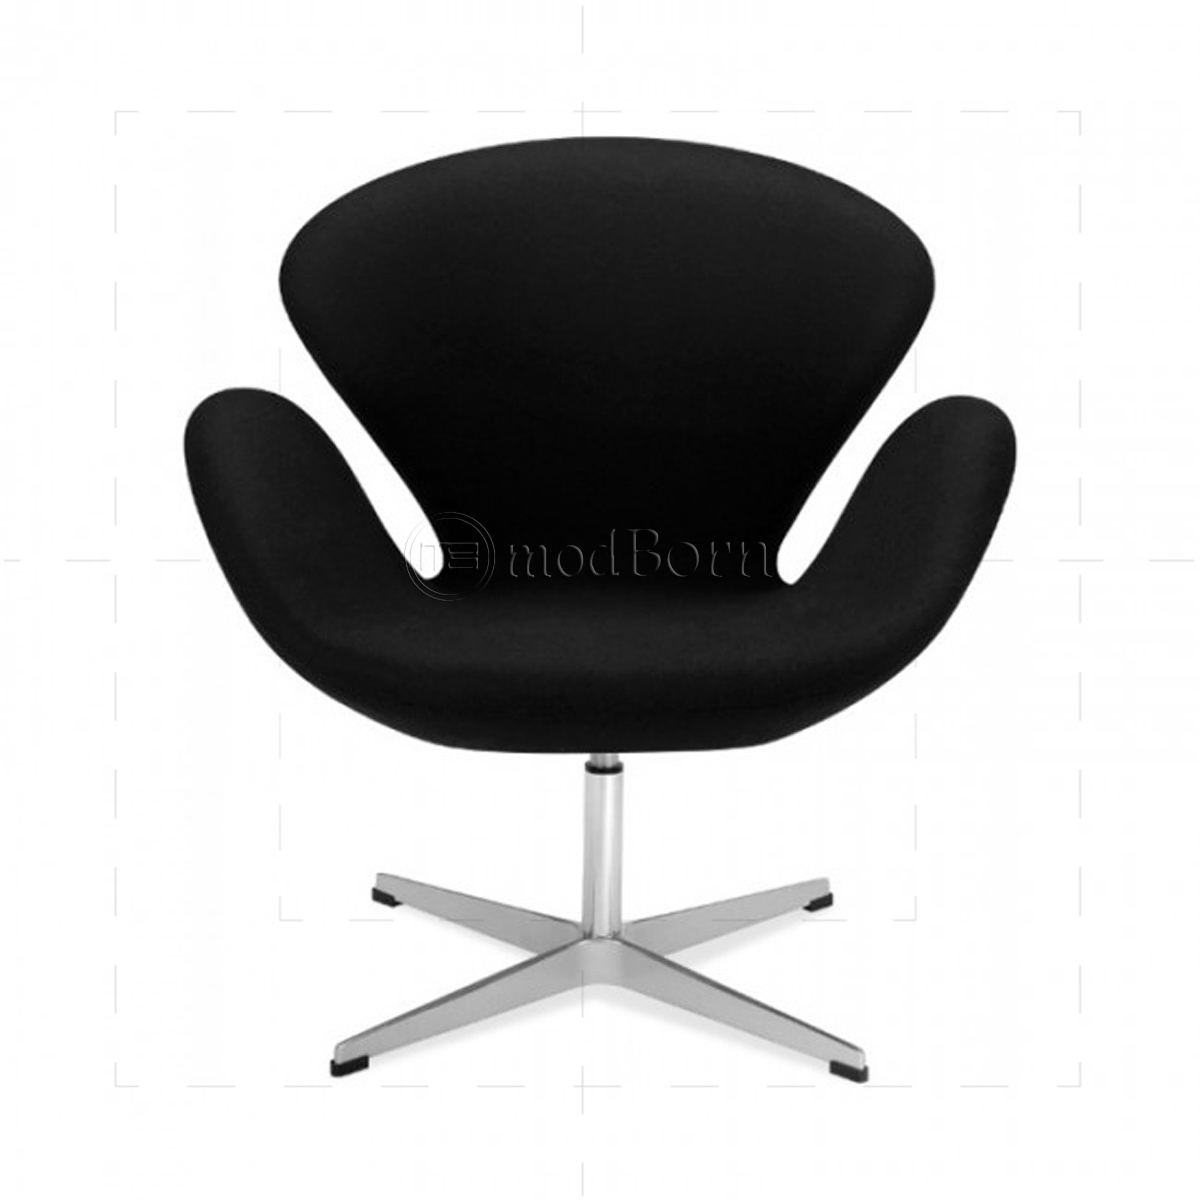 arne jacobsen style swan chair black cashmere wool replica. Black Bedroom Furniture Sets. Home Design Ideas